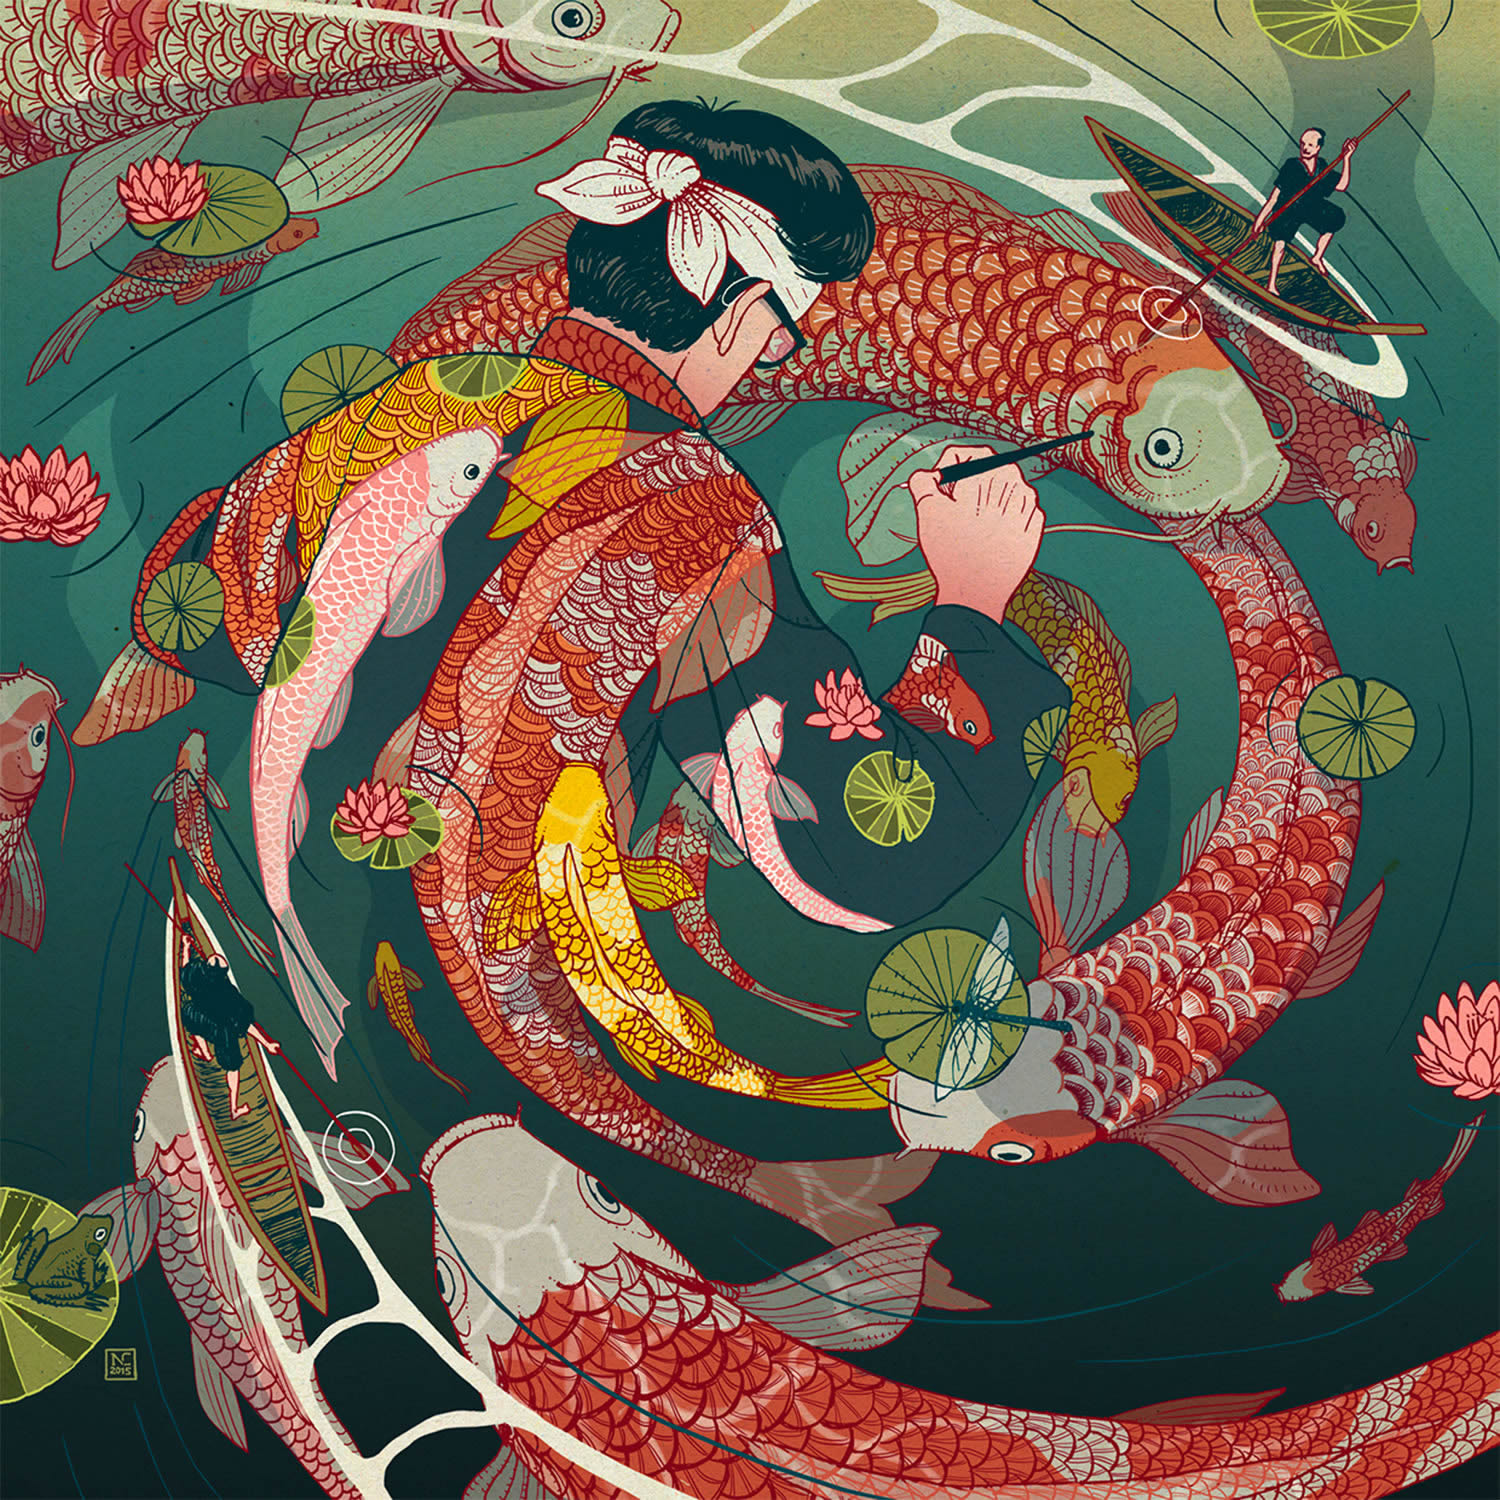 japanese style illustration, man swirling with koi fishes, by Nicolás Castell